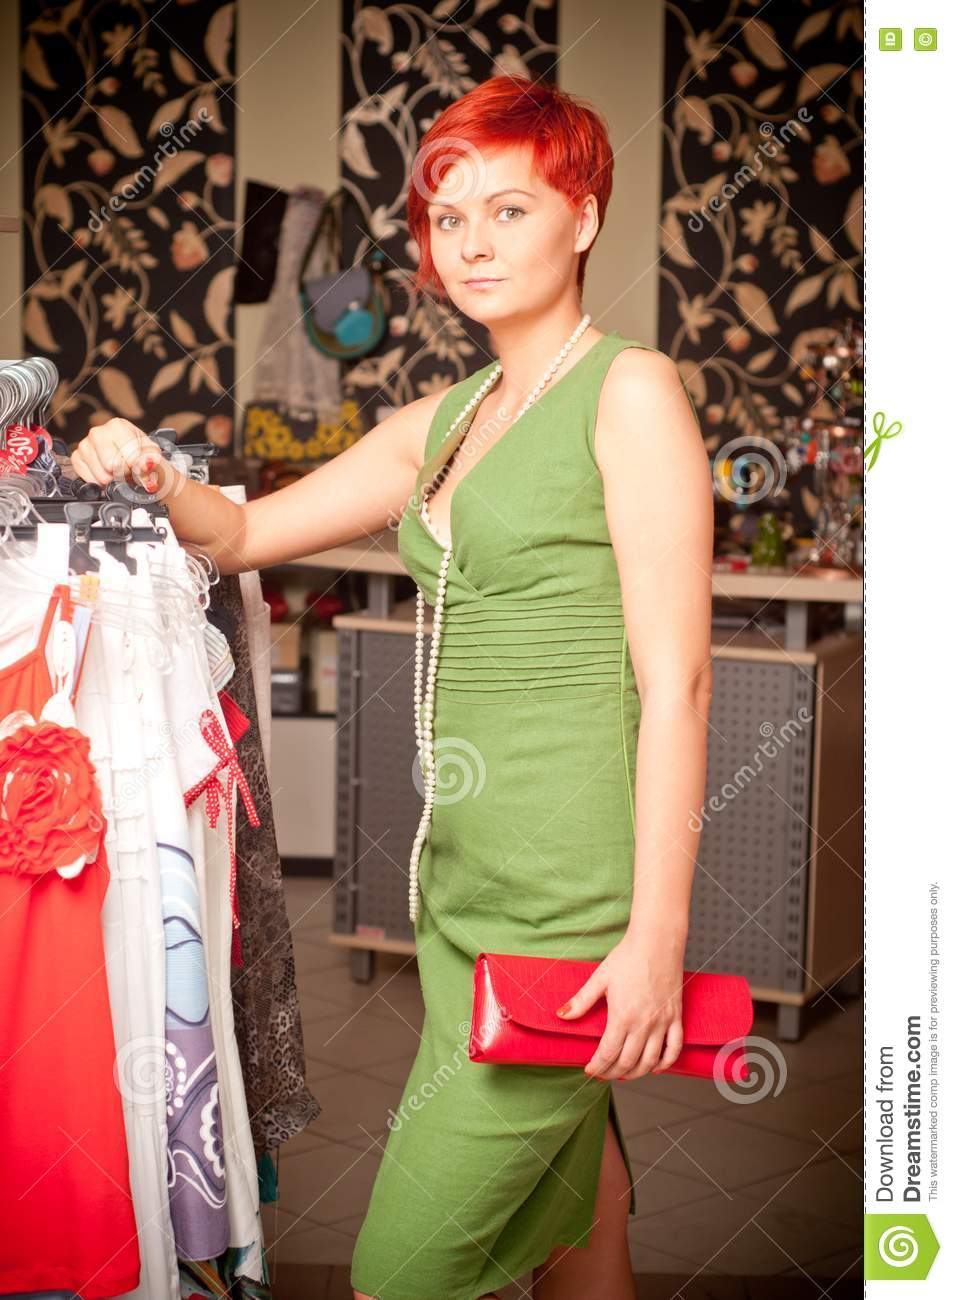 Young adult clothing stores. Cheap online clothing stores